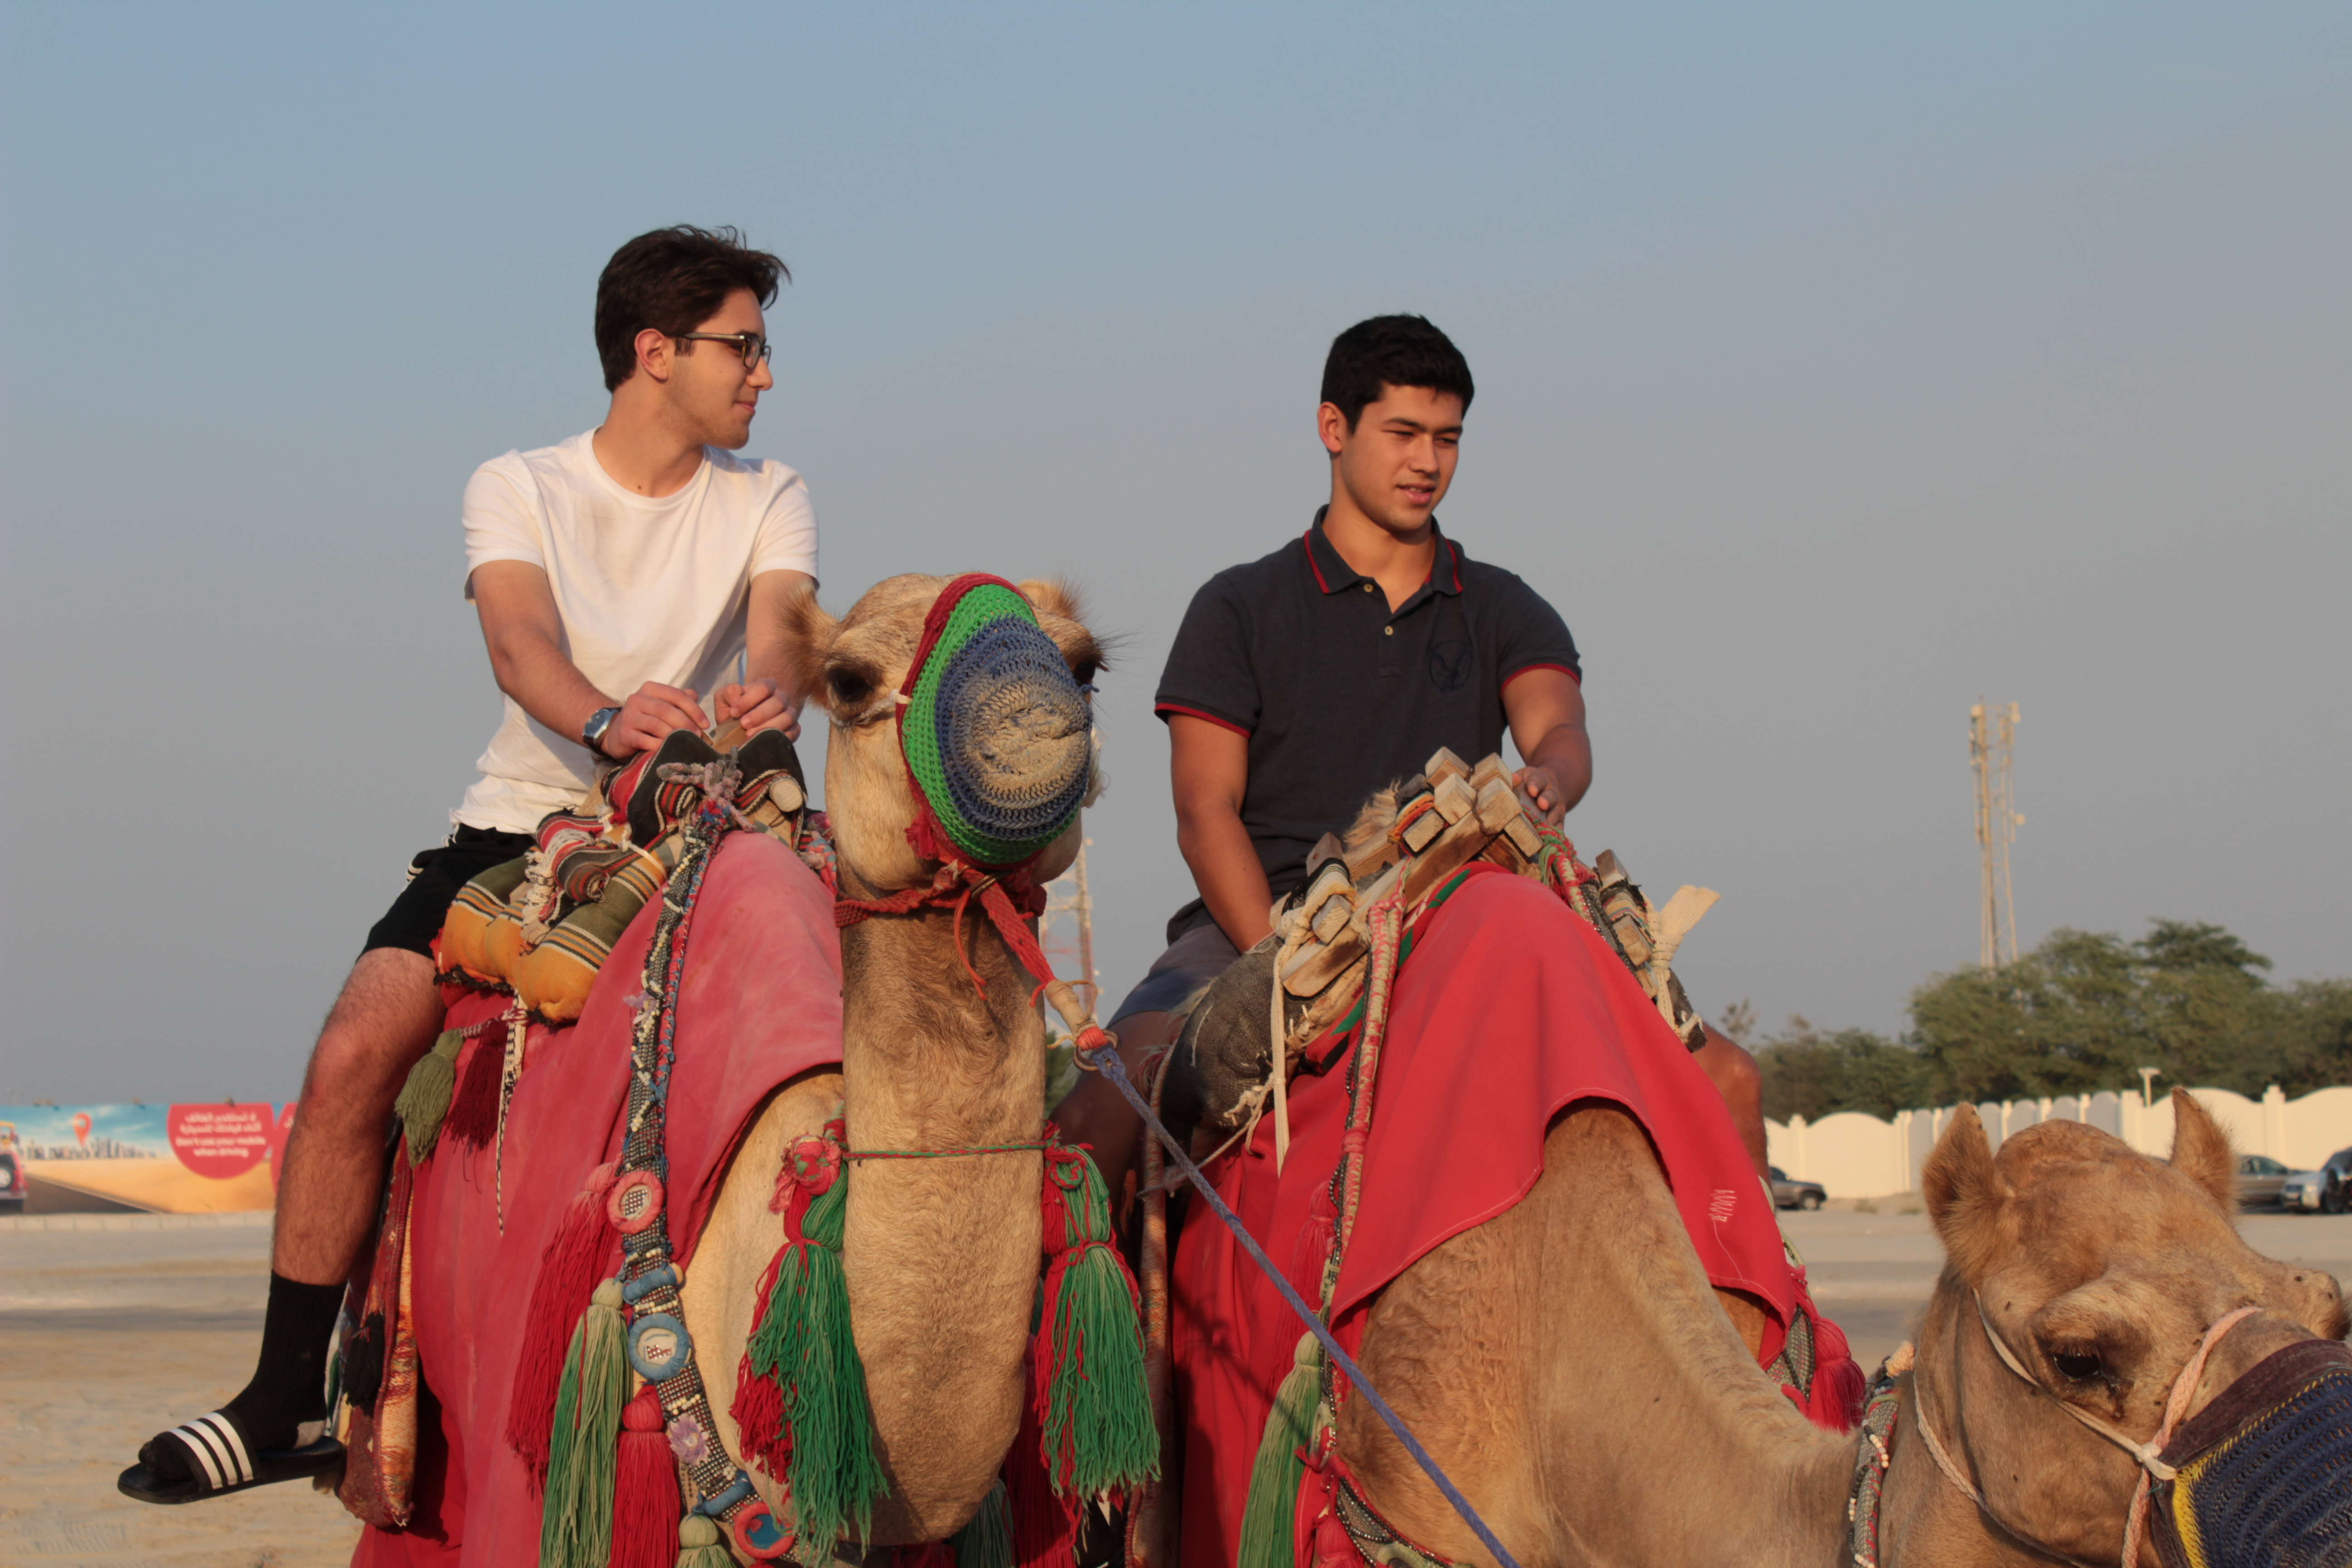 2 male students riding camels